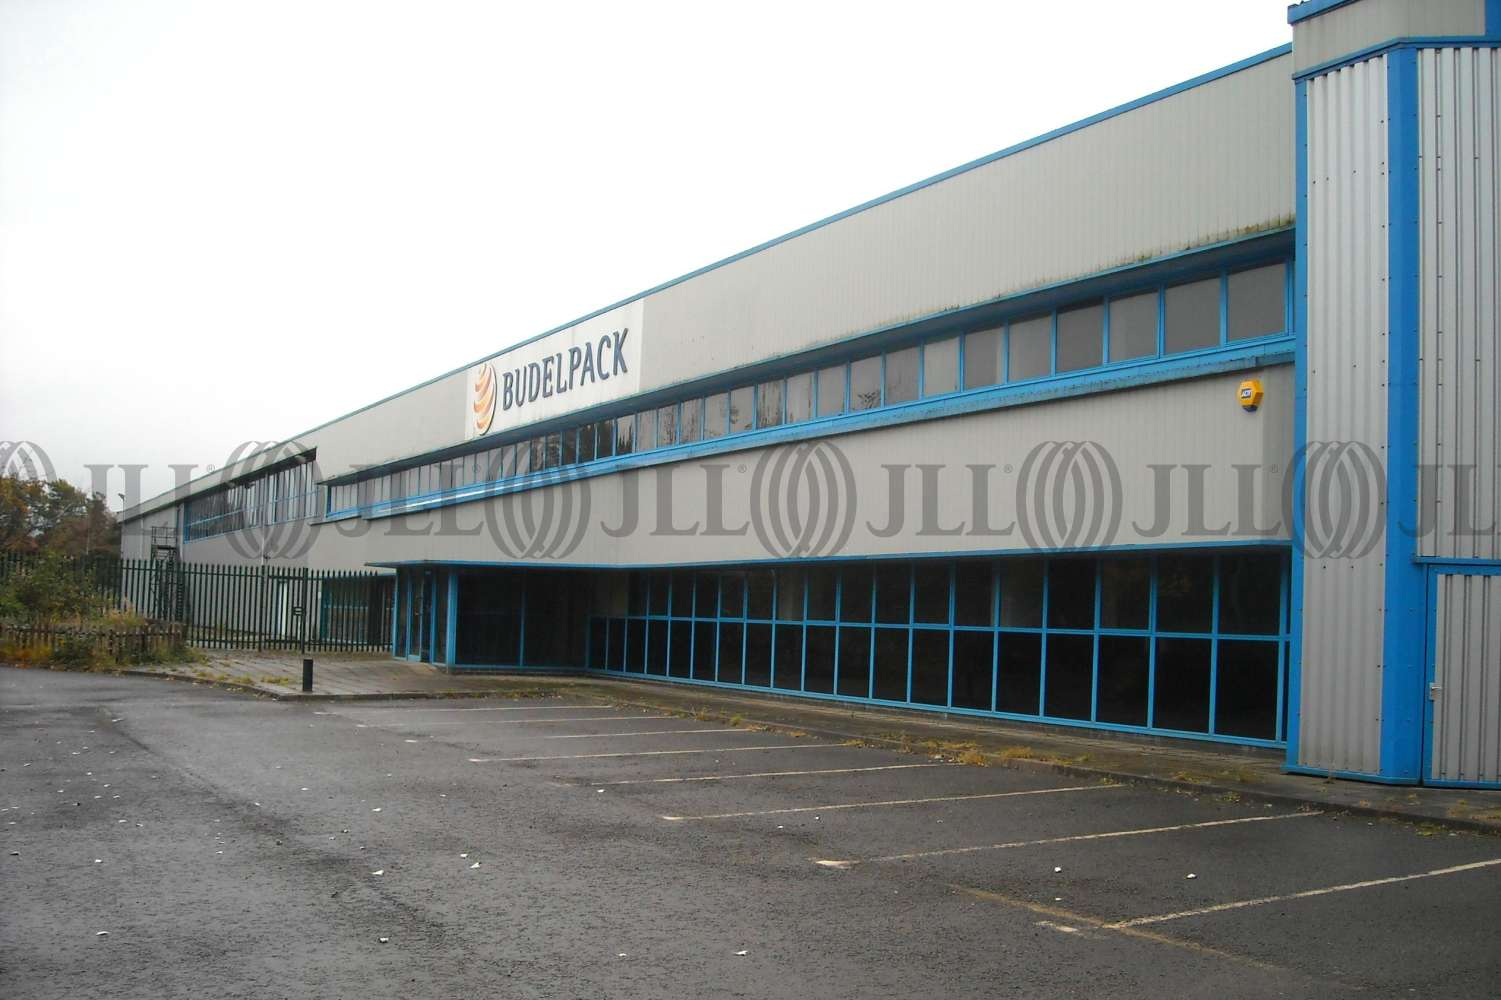 Industrial Rhymney, NP22 5RL - Former Budelpack Premises - 0405